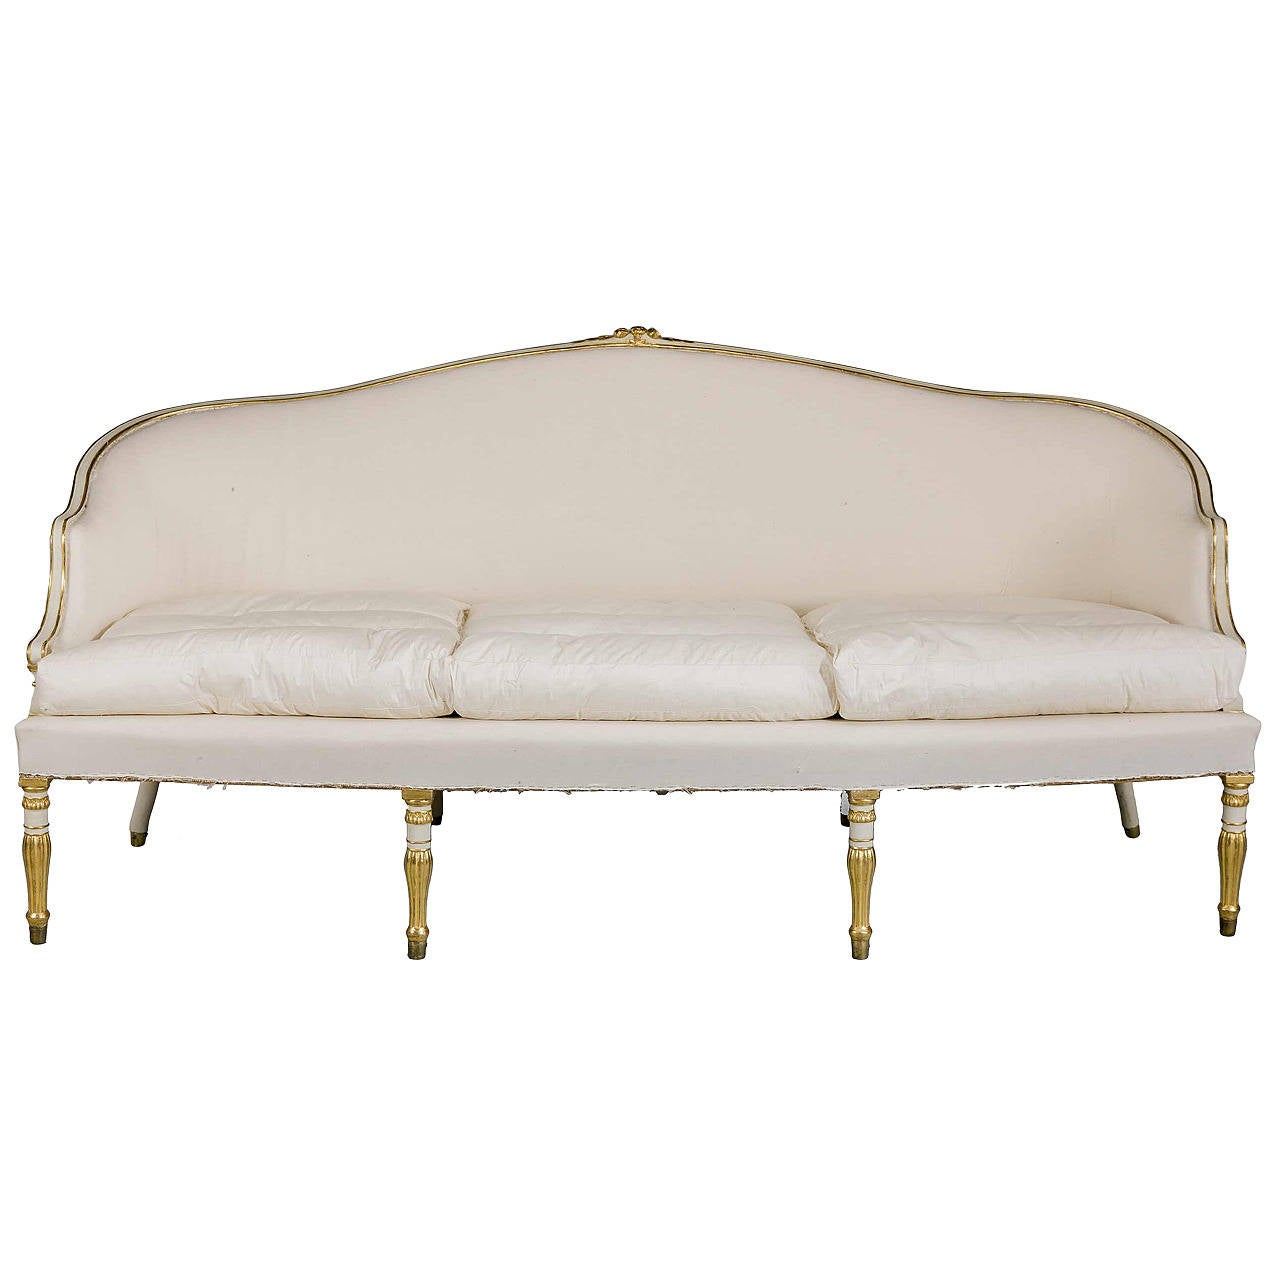 Sheraton Style Furniture This Hepplewhite Period Parcel-Gilt Sofa is no longer available.